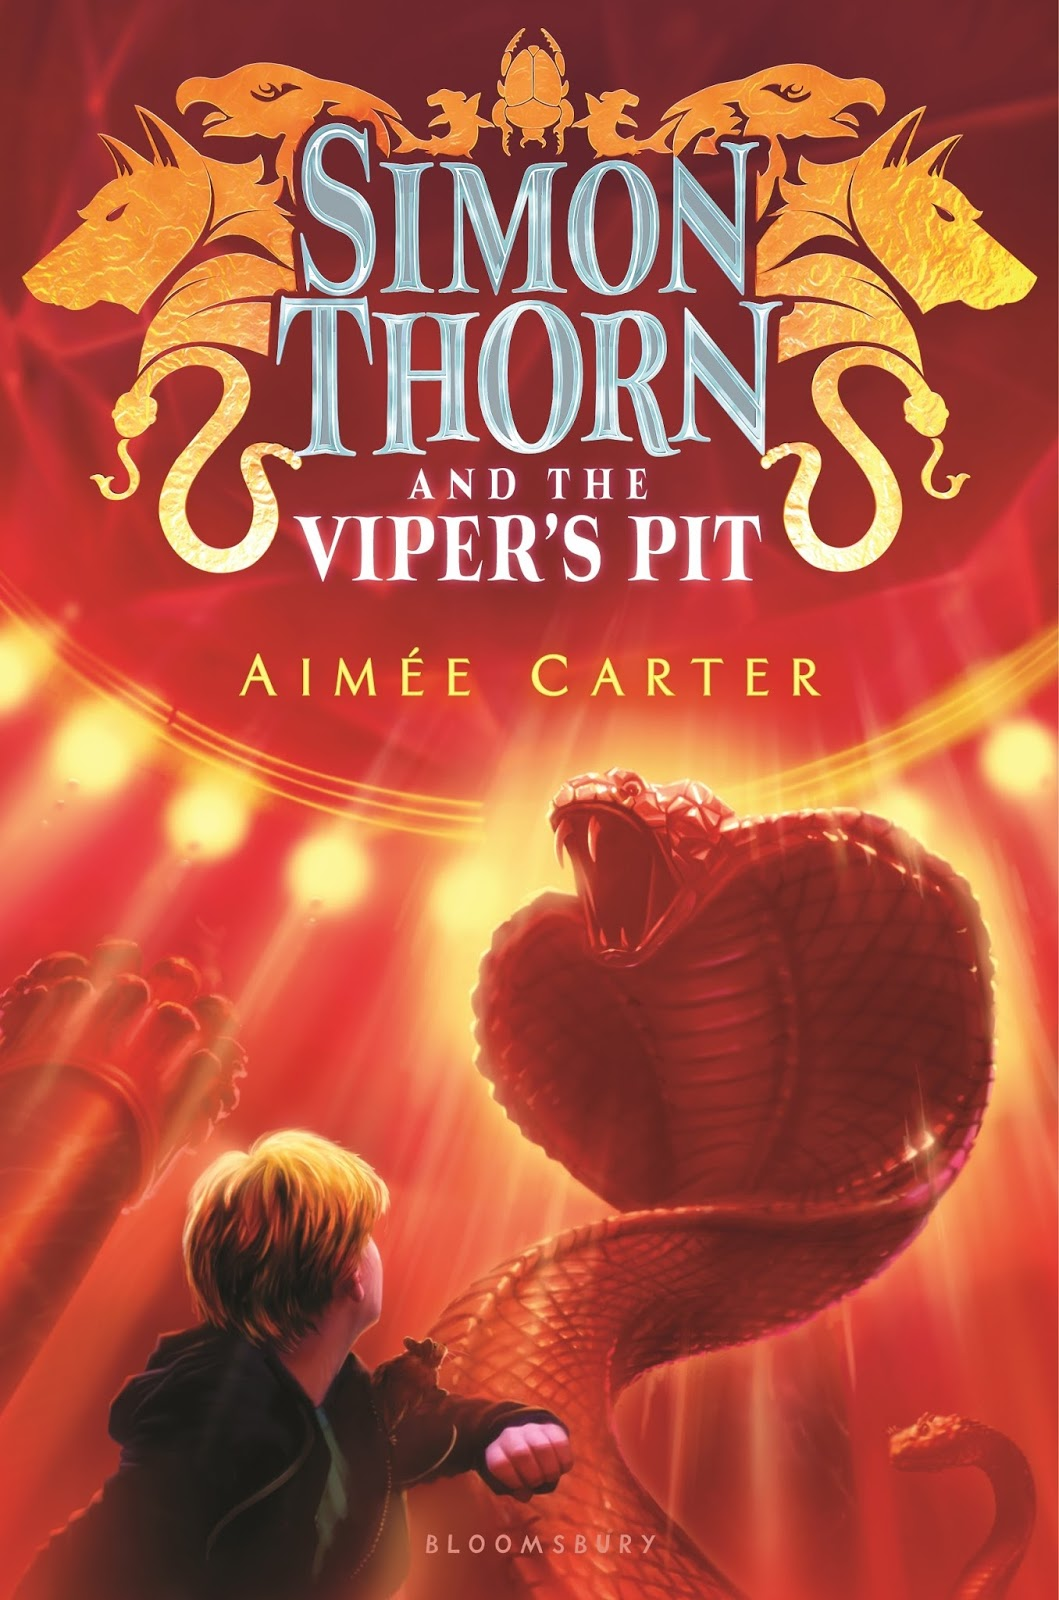 Aim�e Carter  Simon Thorn And The Viper's Pit  Published By Bloomsbury  Usa Childrens (february 7, 2017)